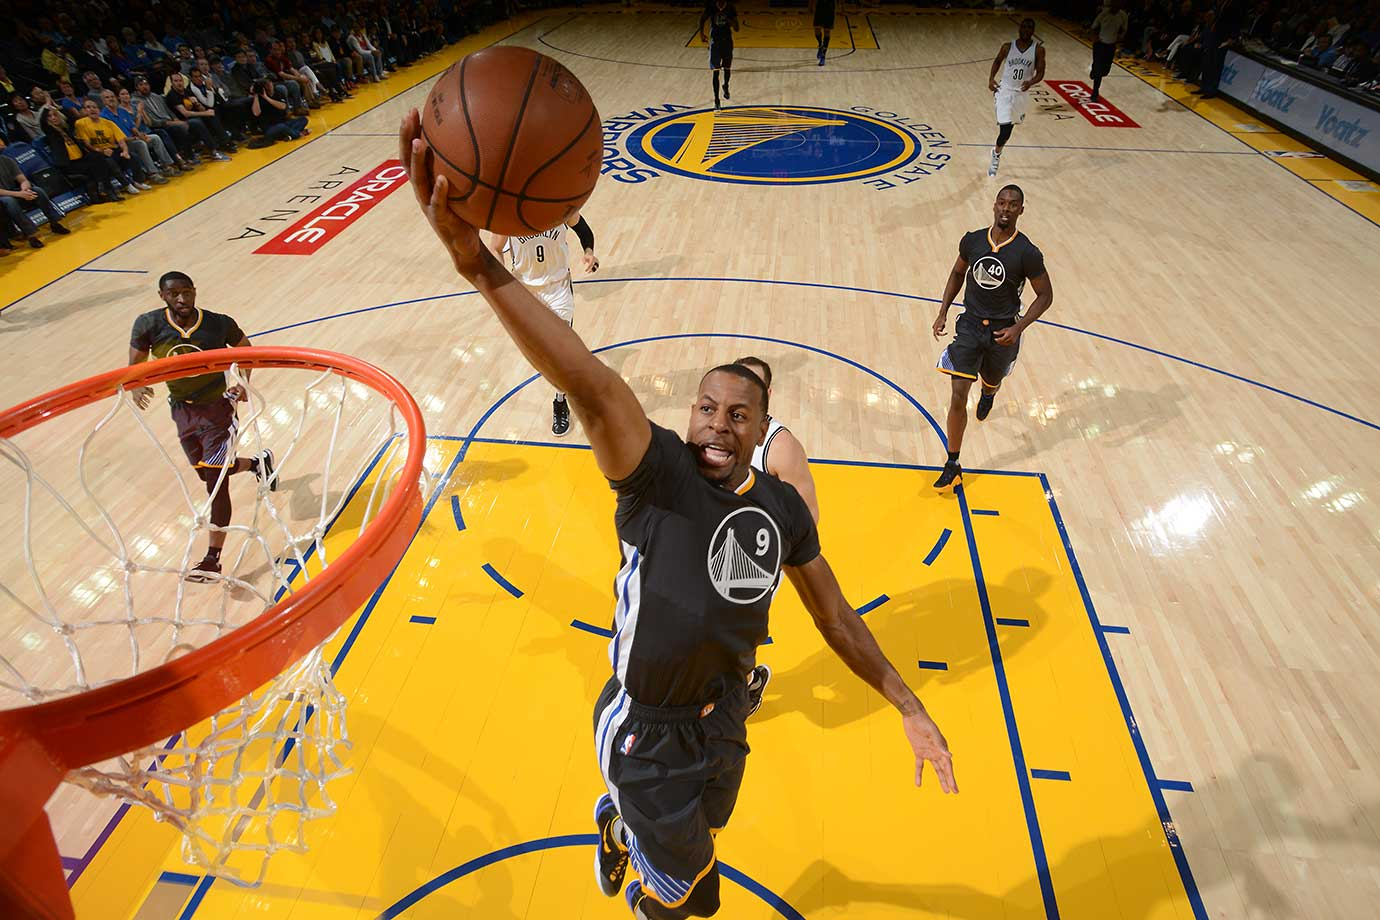 Andre Iguodala scored 18 points, including an overtime-producing three-pointer with 5.9 seconds left as the Warriors ran their record to 11-0.